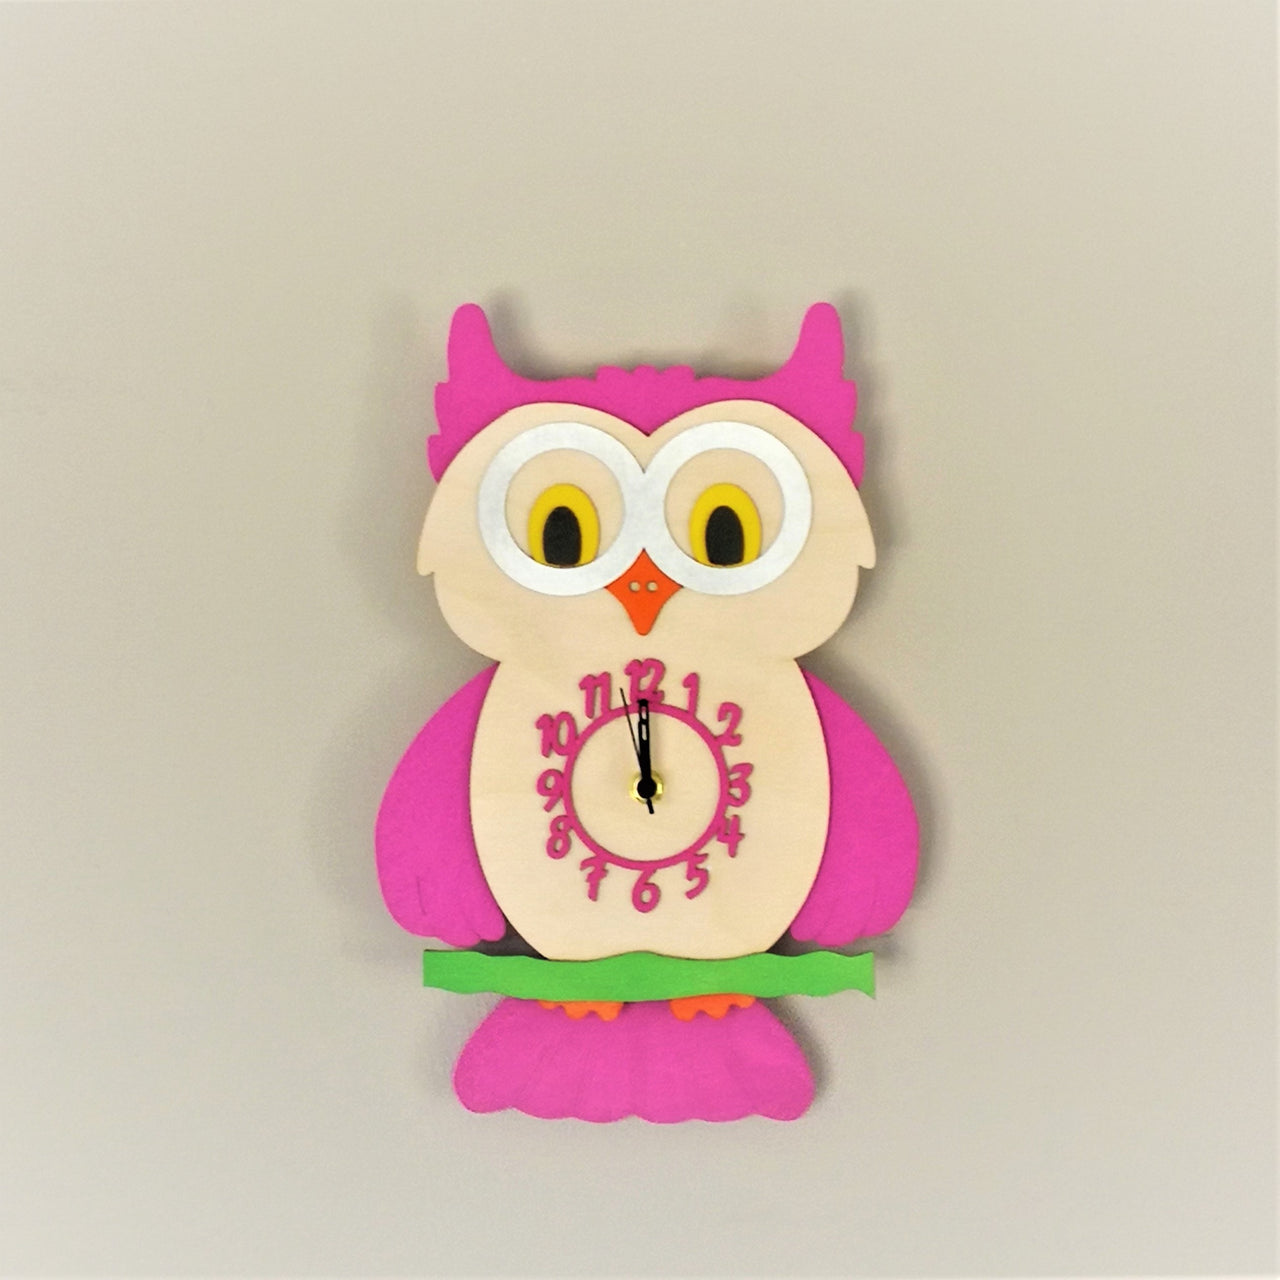 Owl Pink Pendulum Clock - Kids Room Decor | Toys Gifts | Childrens Interiors | Rooms for Rascals